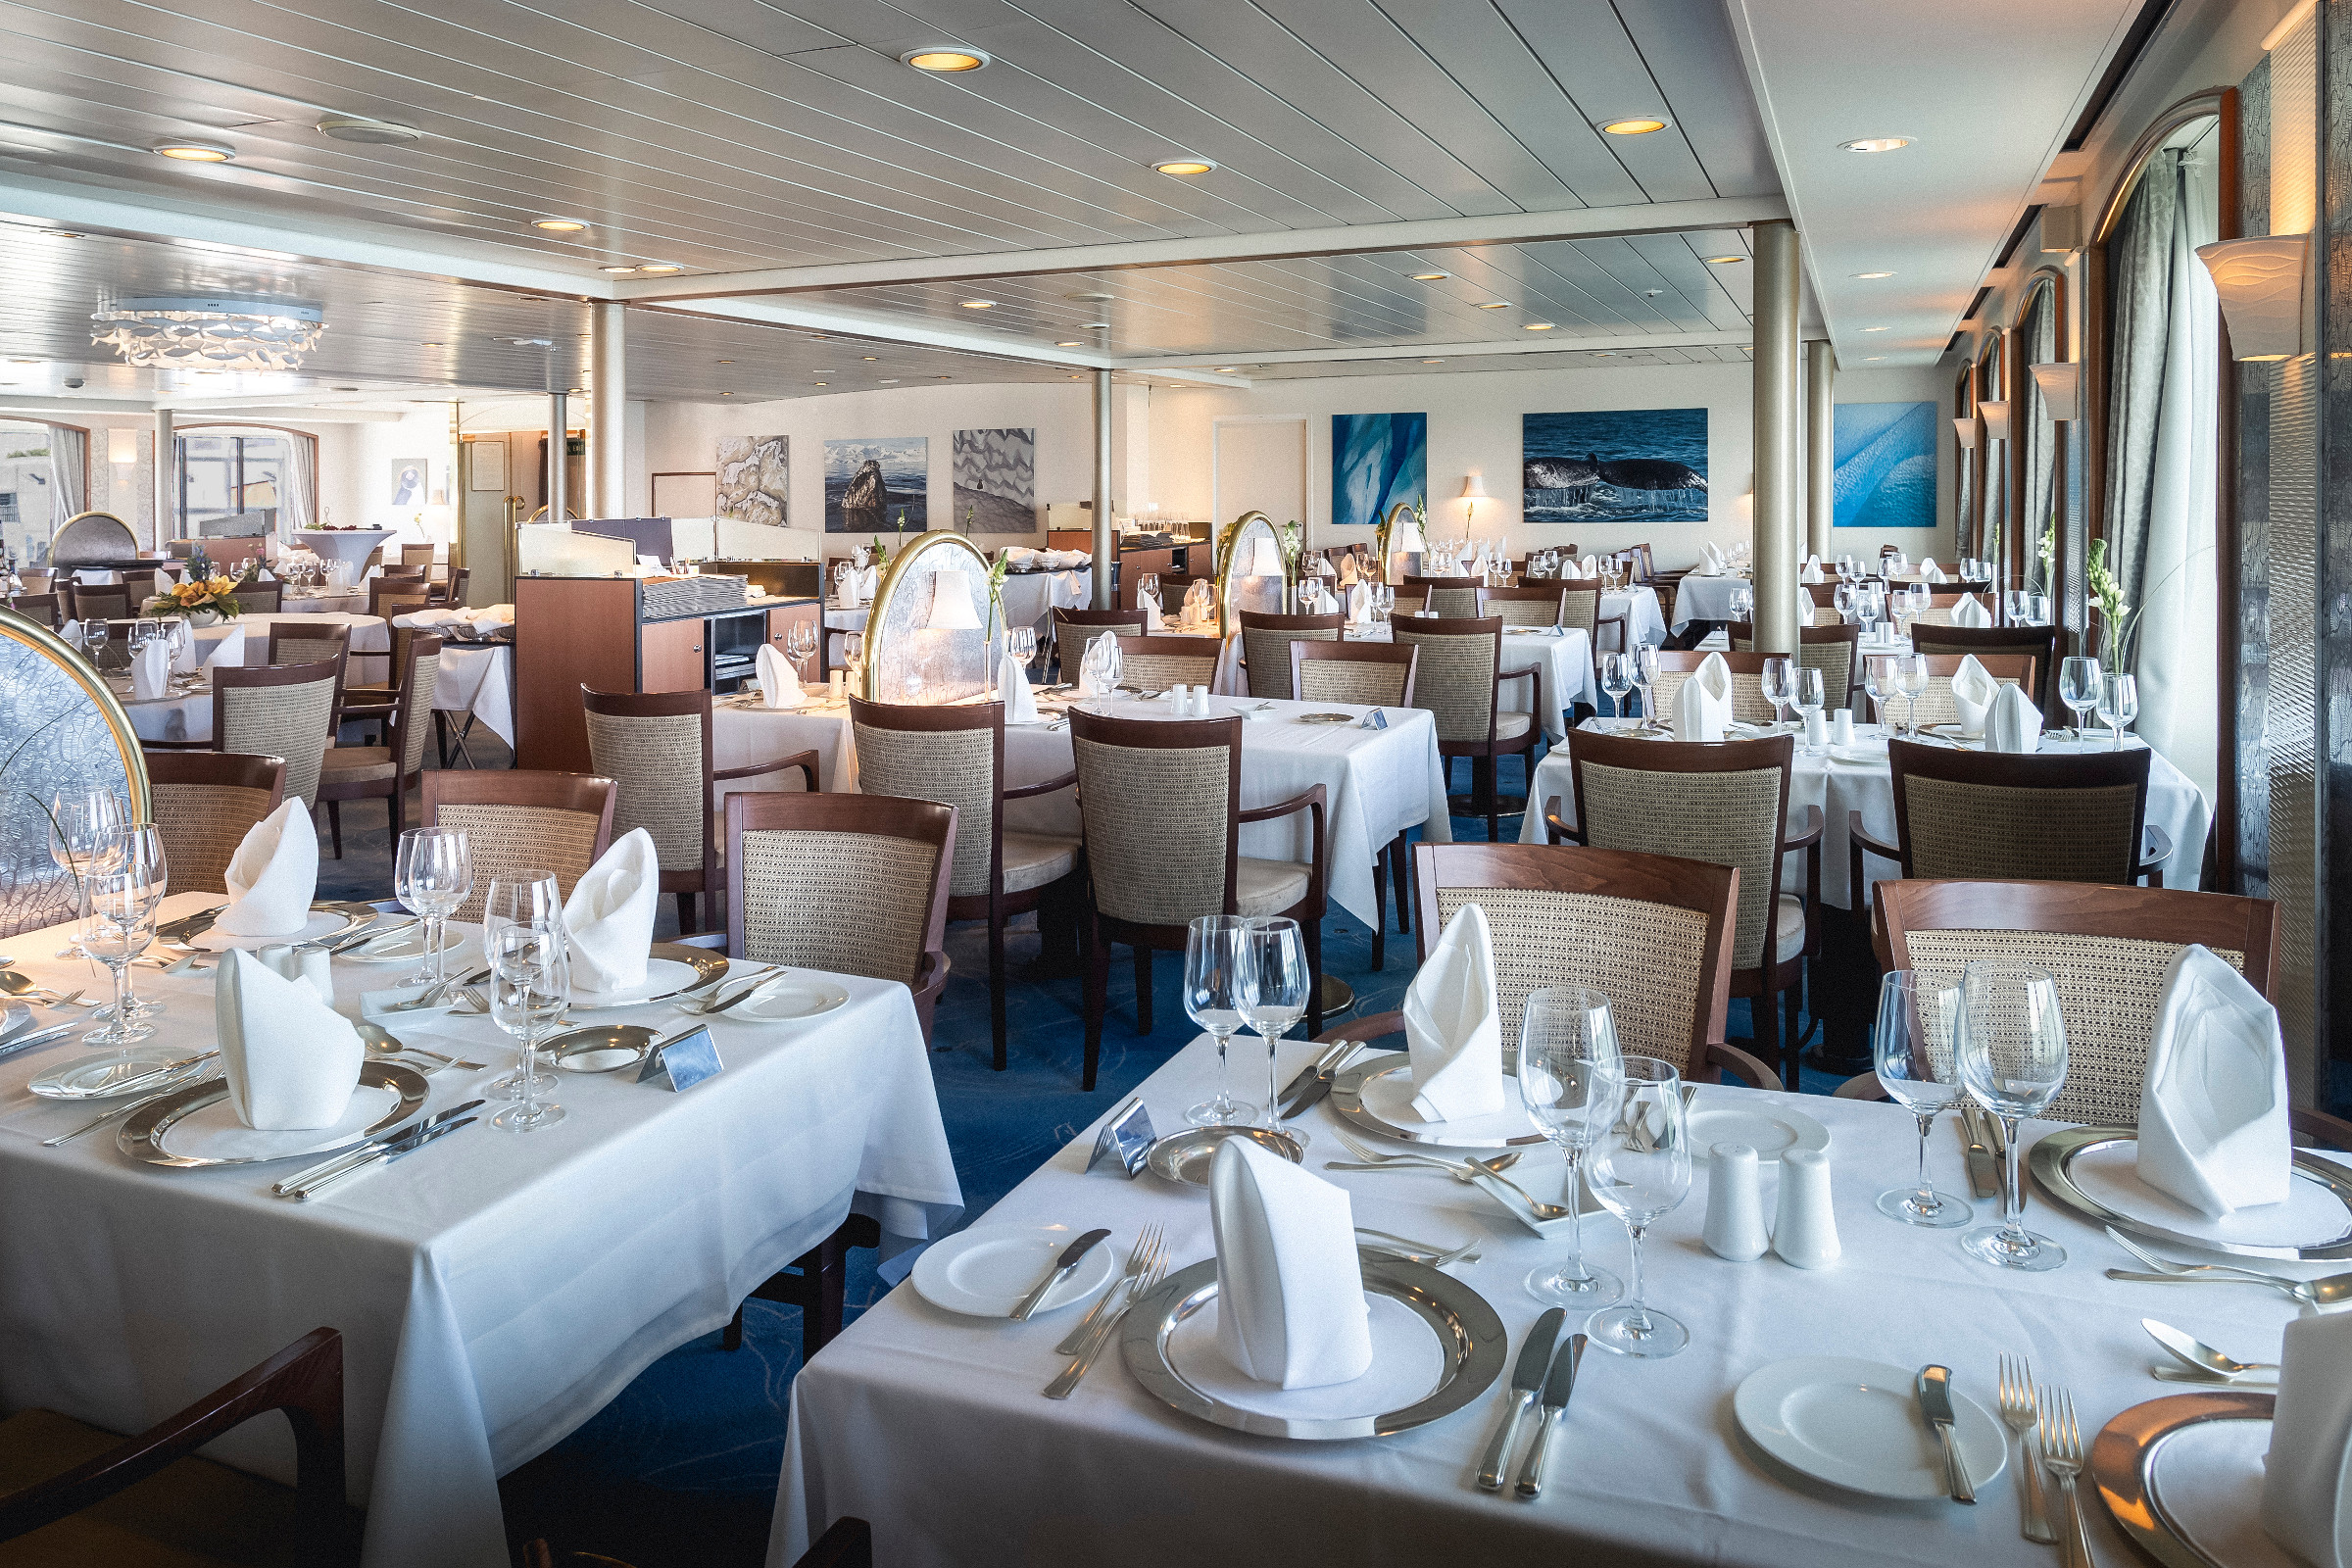 MS Seaventure Dining Room